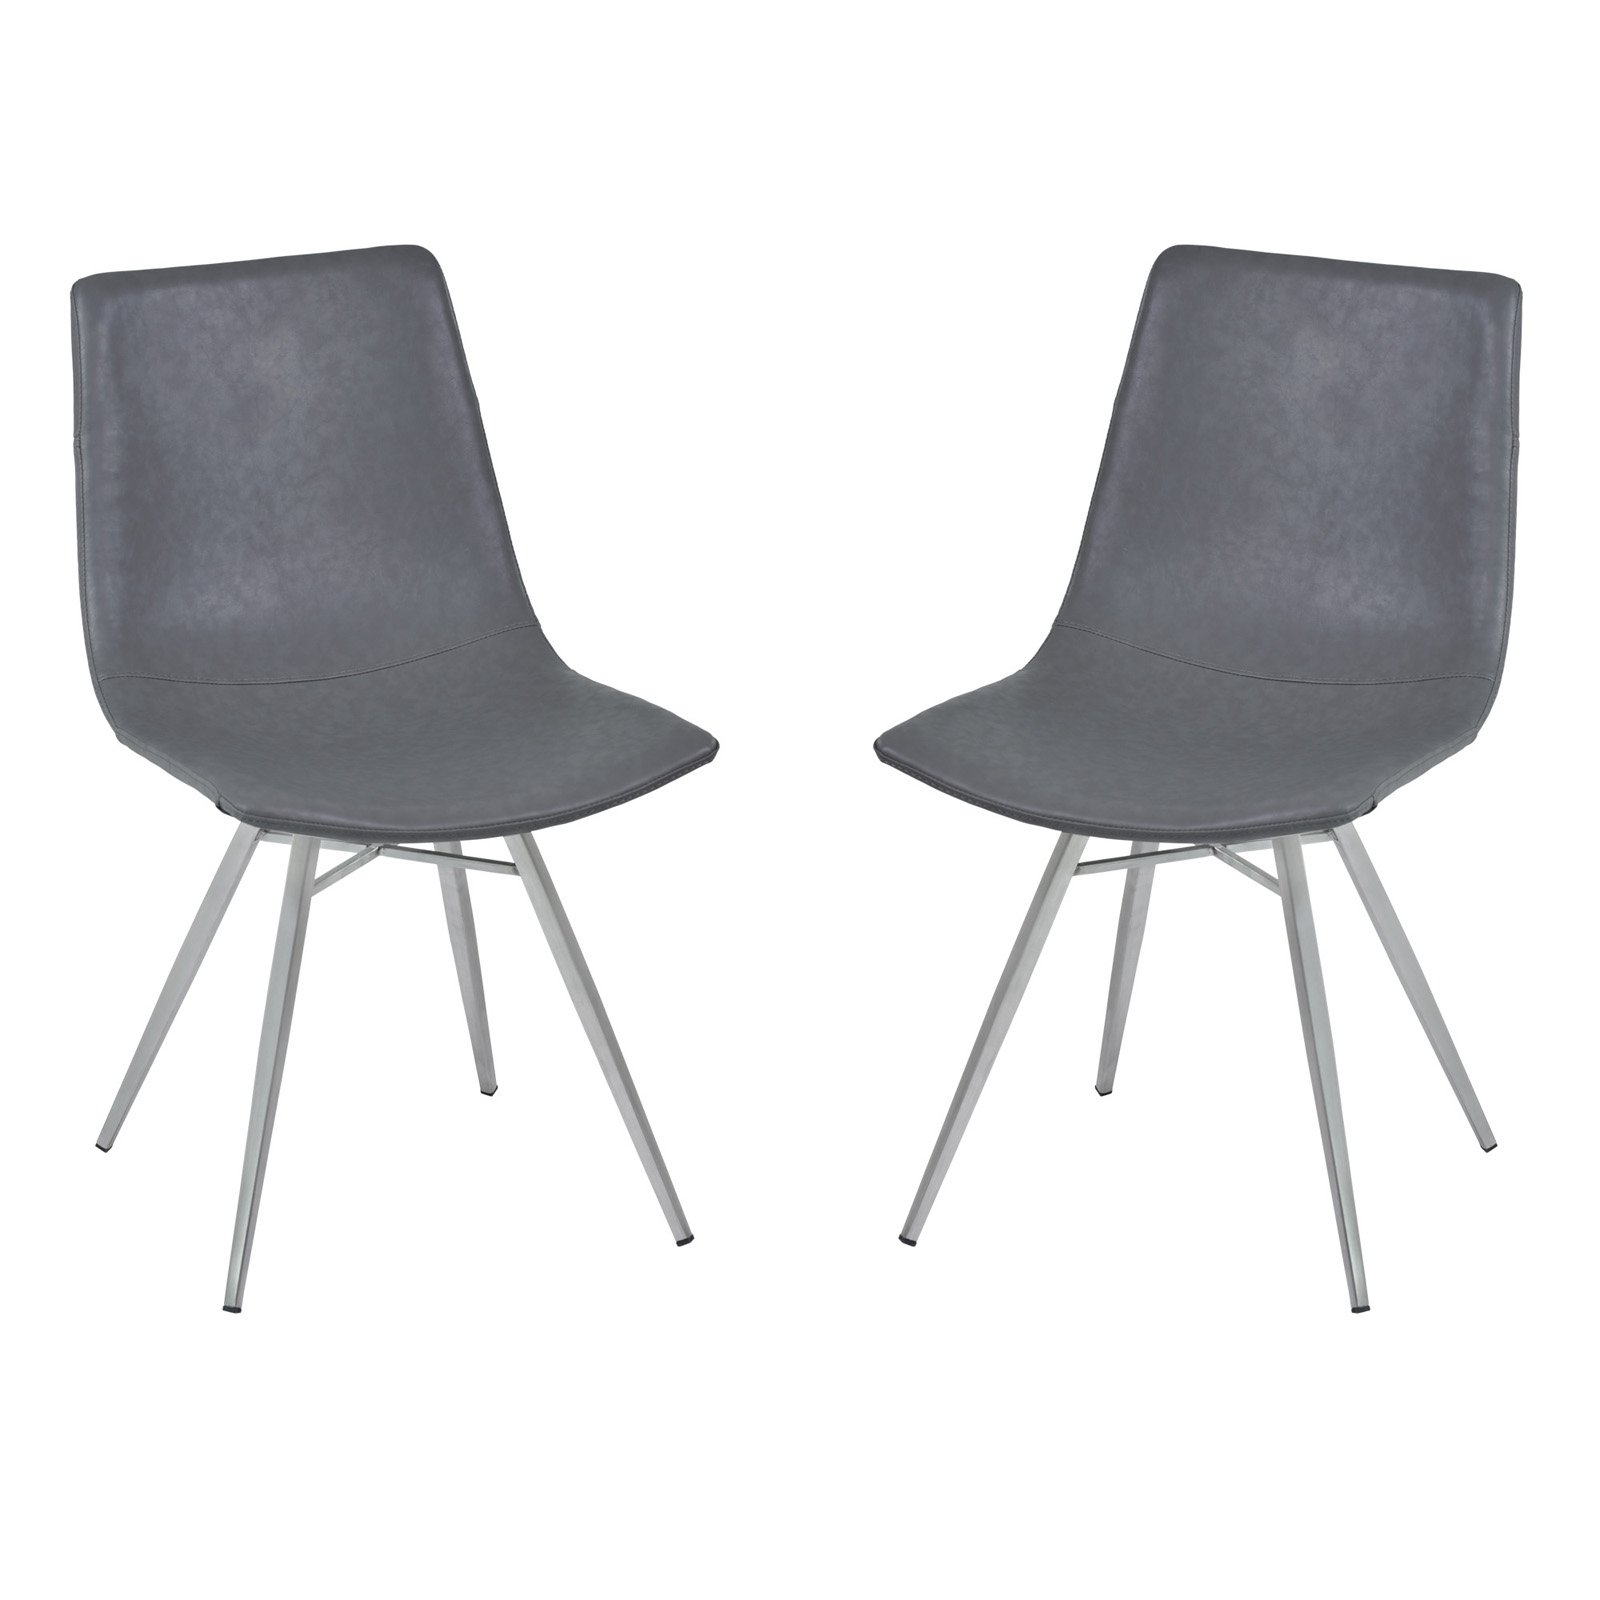 Armen Living Athens Dining Chair in Vintage Gray Pu and Brushed Stainless Steel (Set of 2) by Armen Living